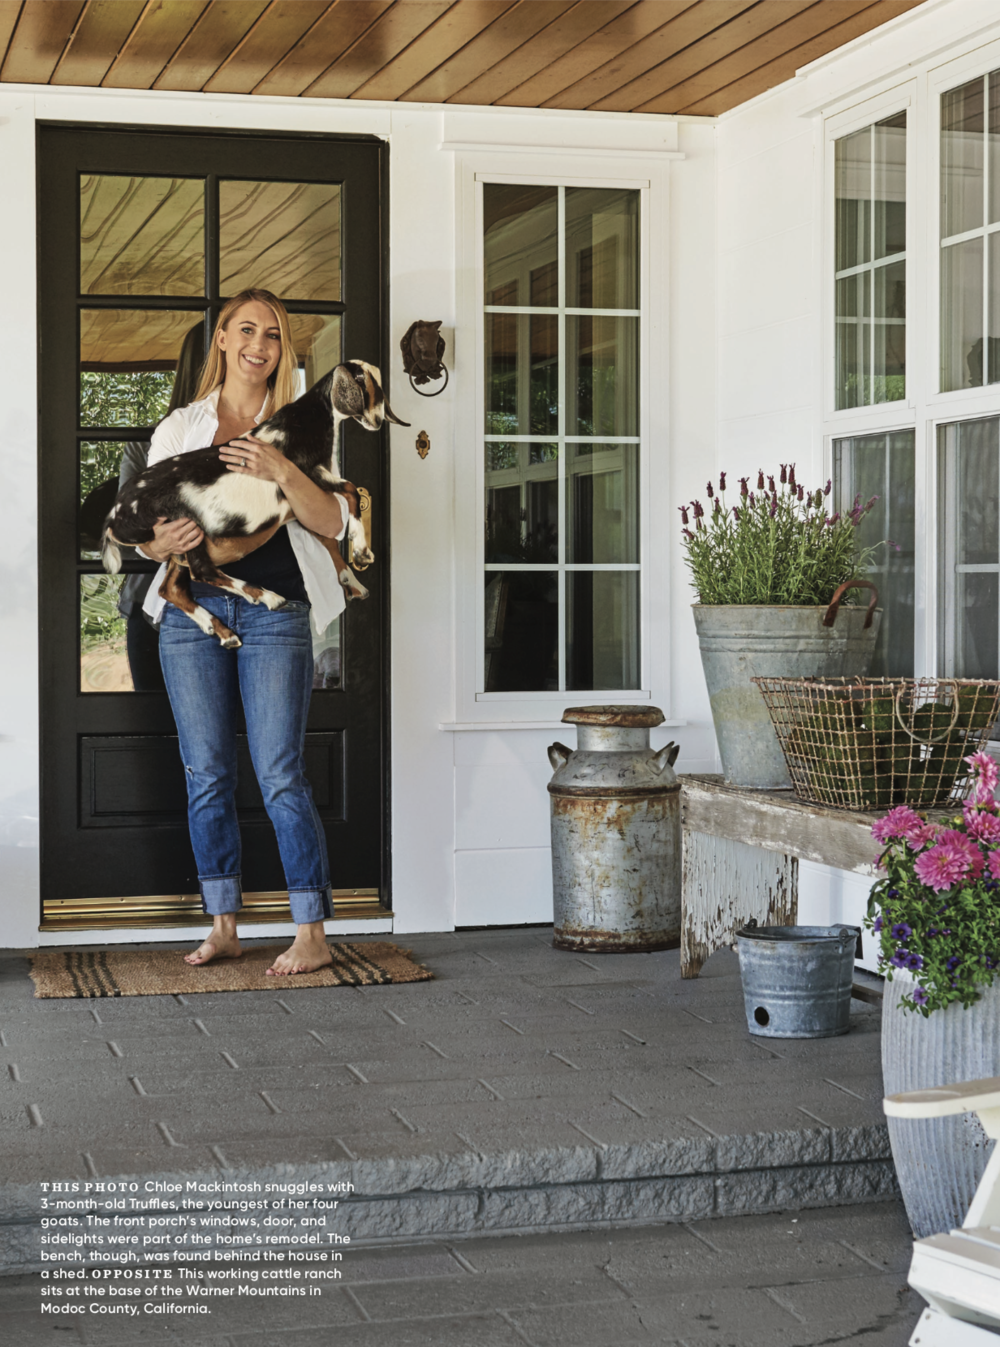 COUNTRY HOME MAGAZINE - Come see our home in this spring's Country Home Magazine!